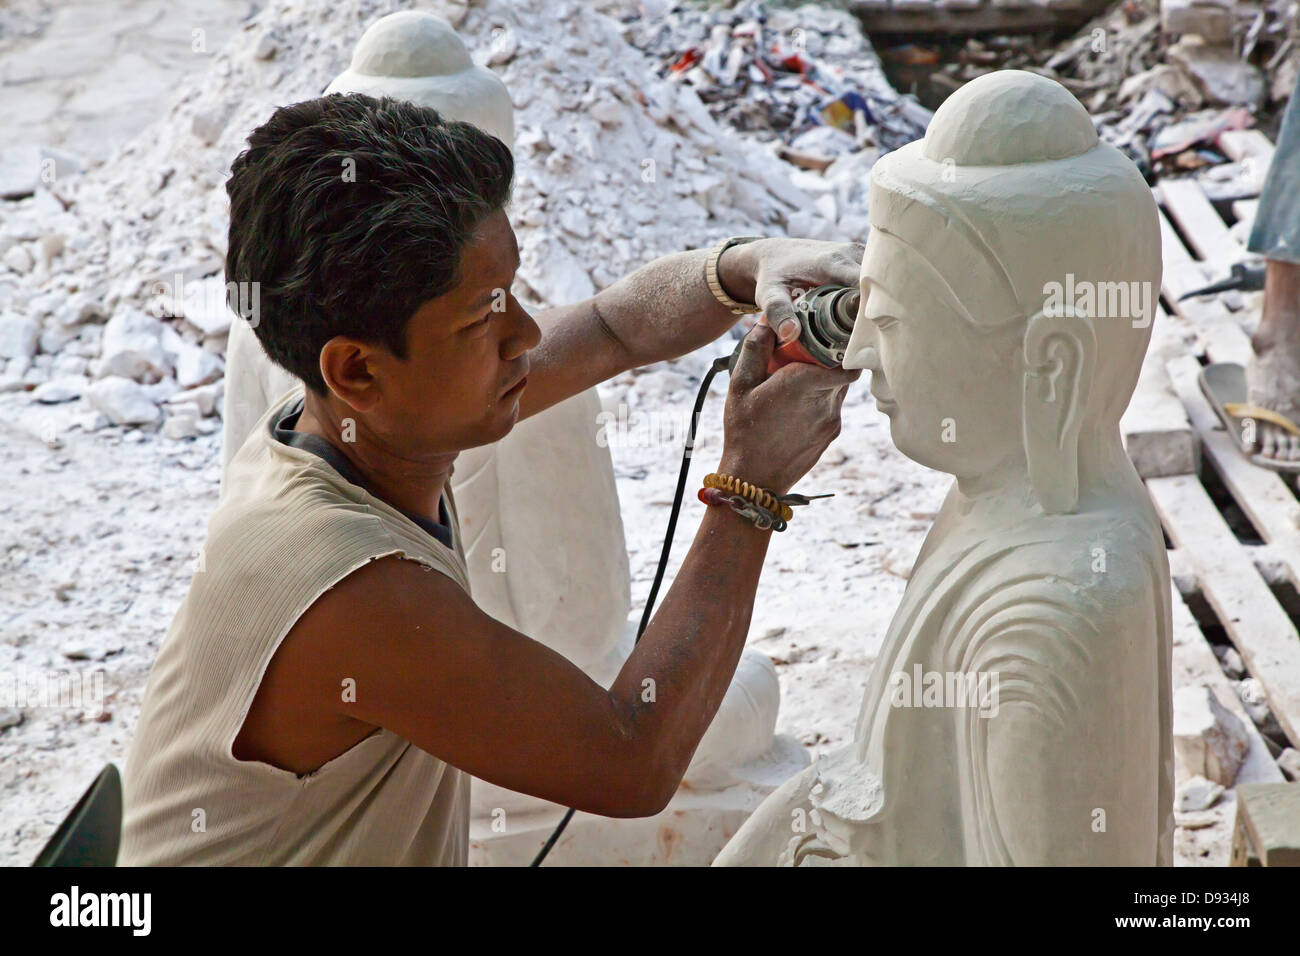 The carving of BUDDHA images is a living art in MANDALAY - MYANMAR - Stock Image